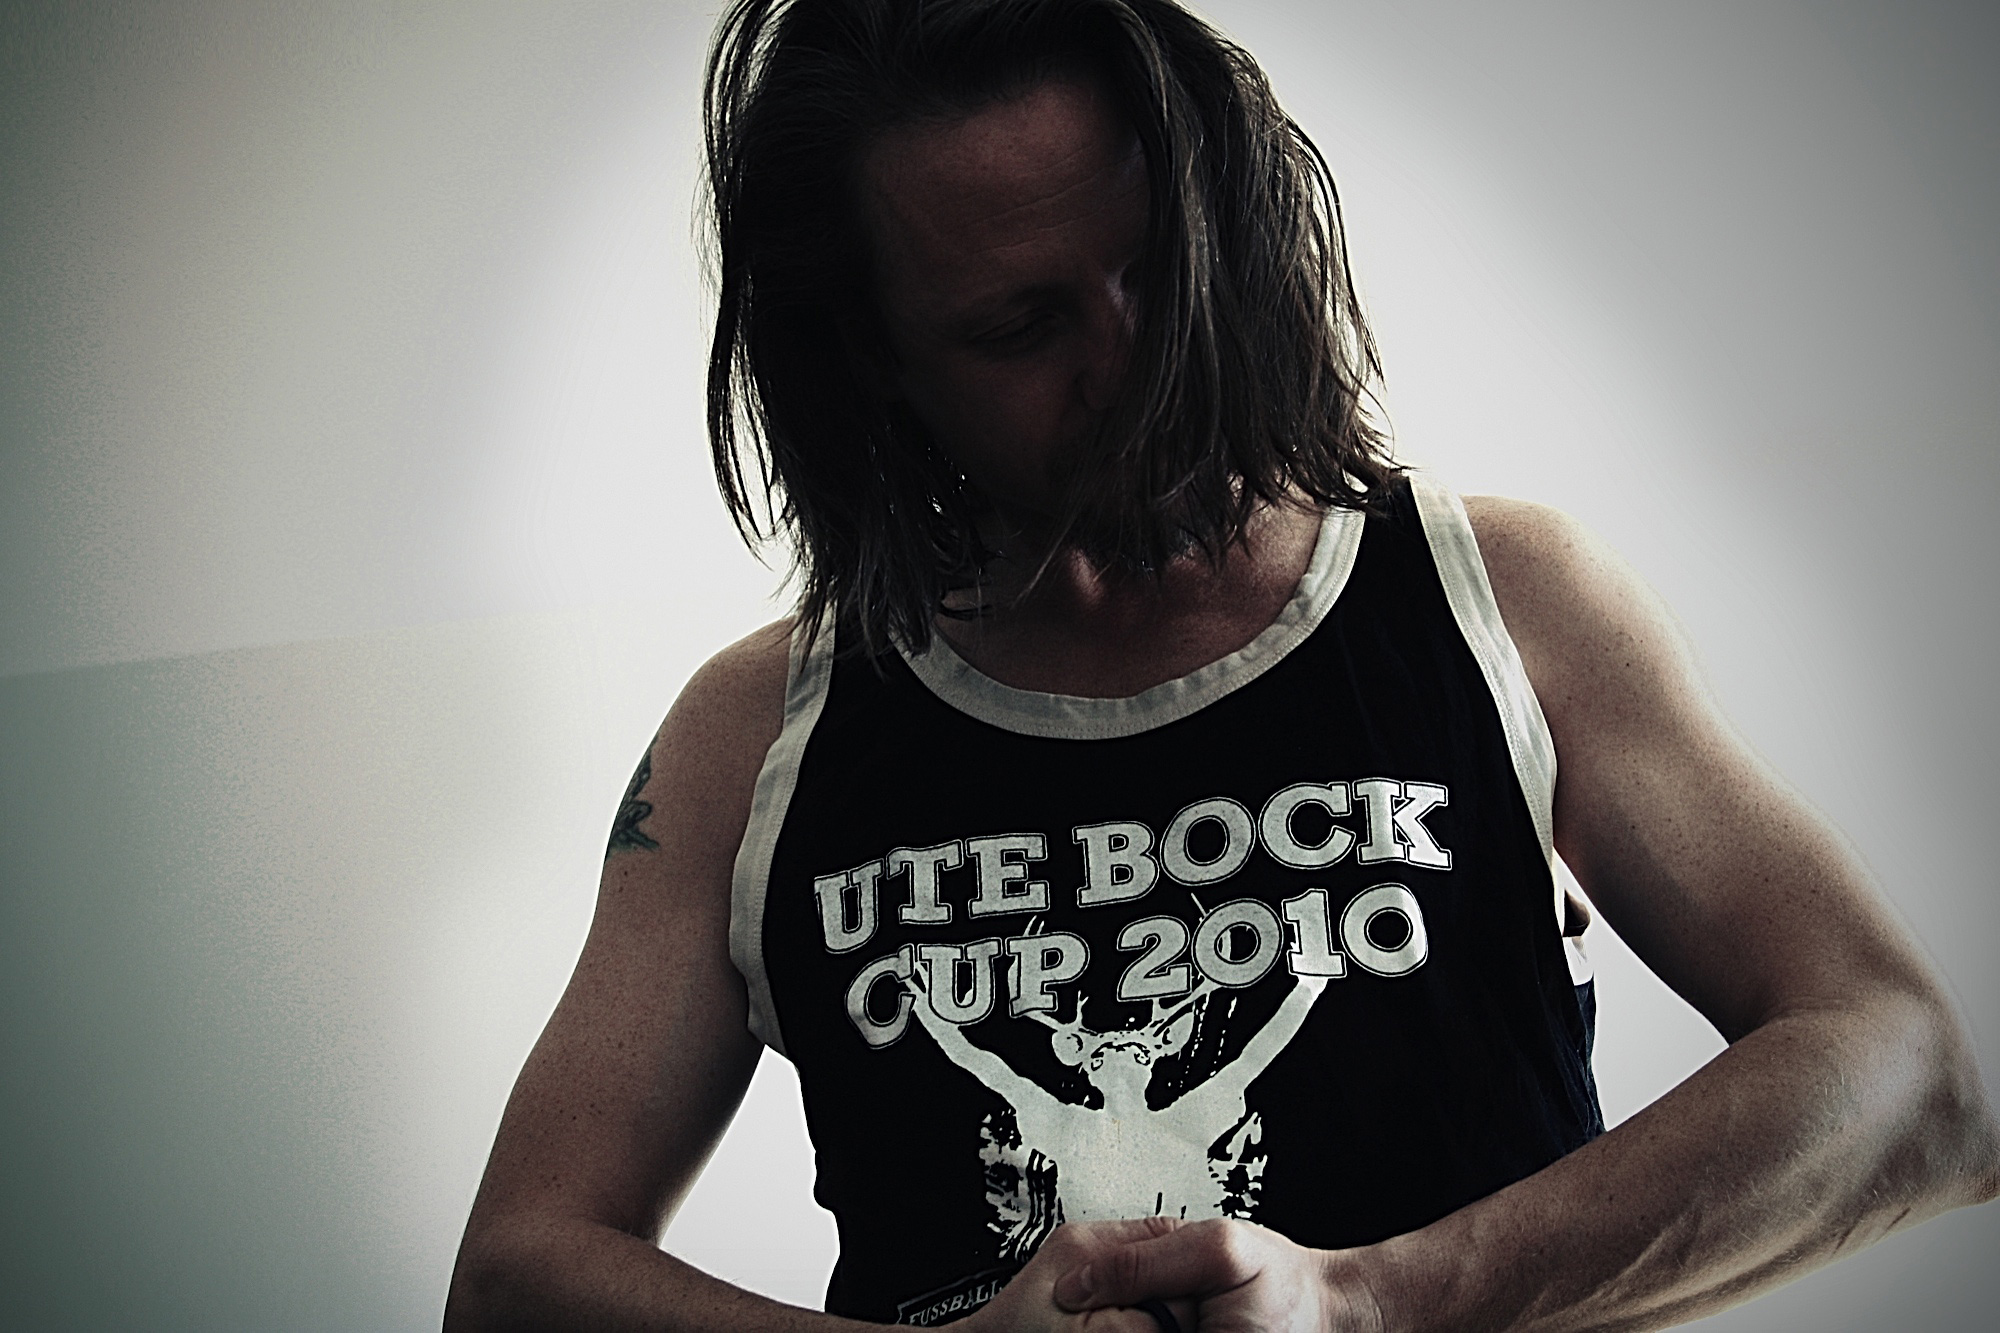 Ute Bock Cup - The Wrestler